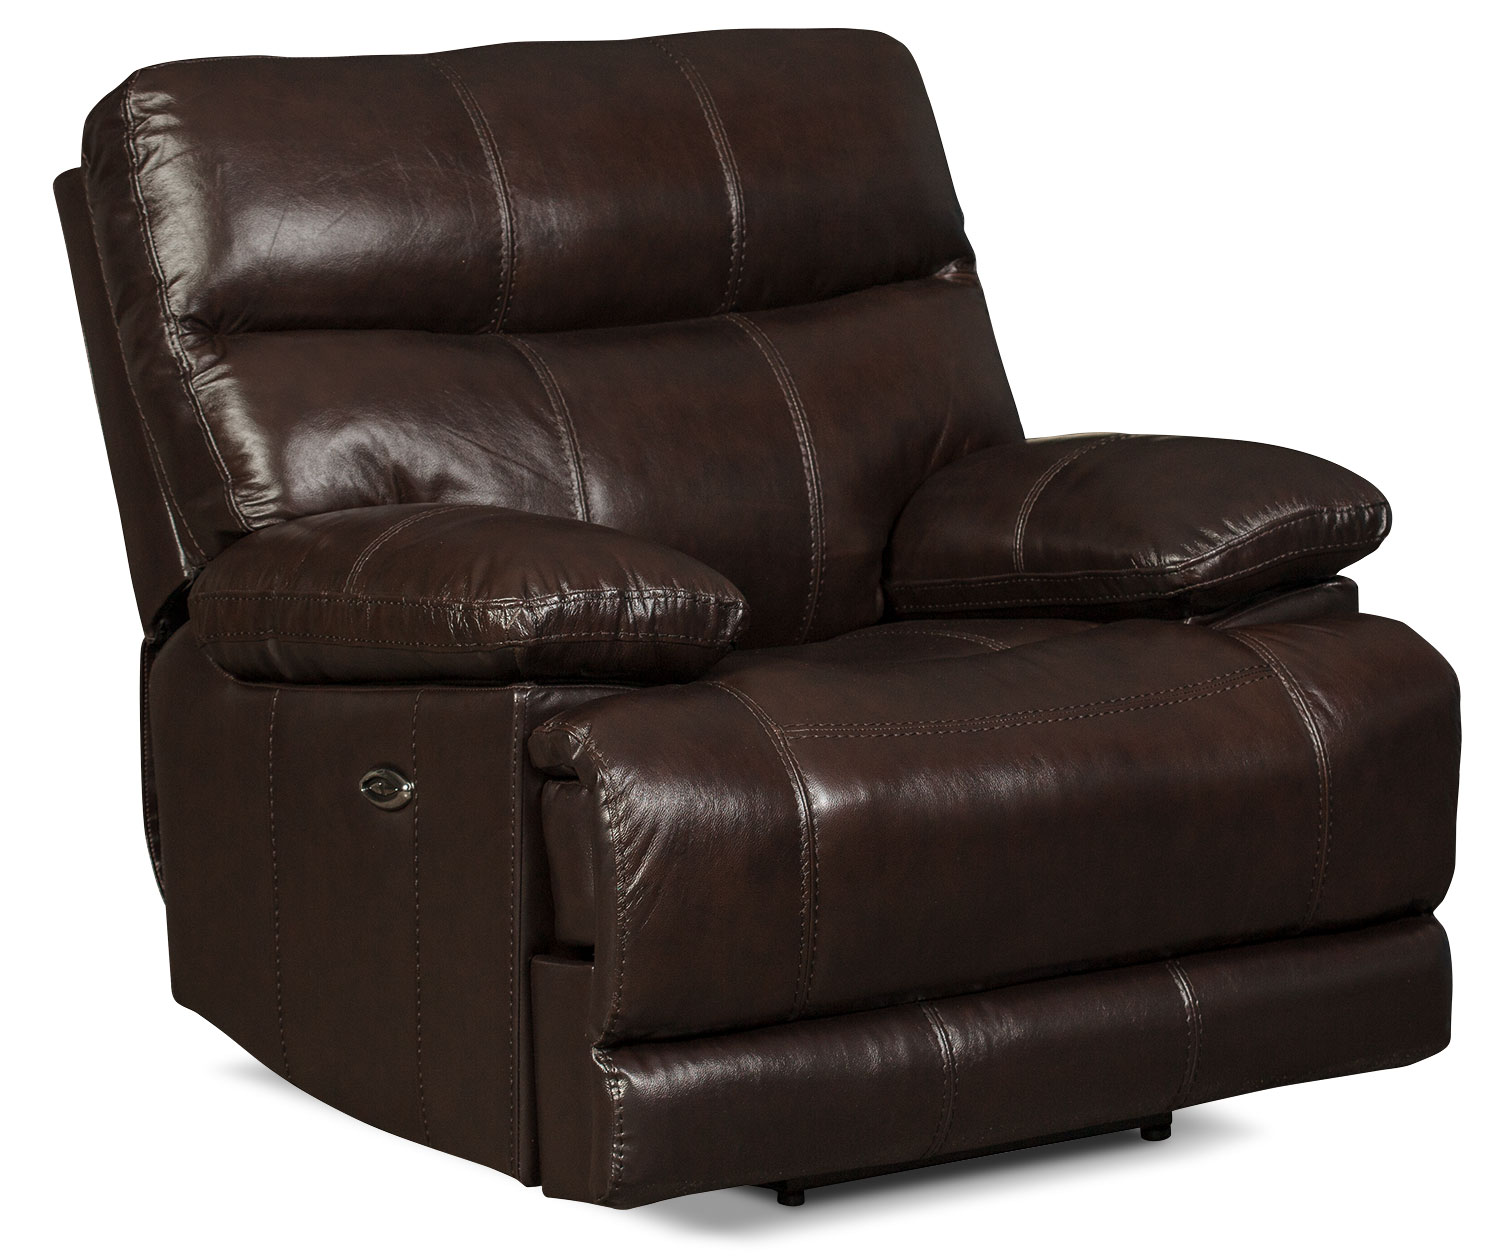 Reclining Chairs The Brick